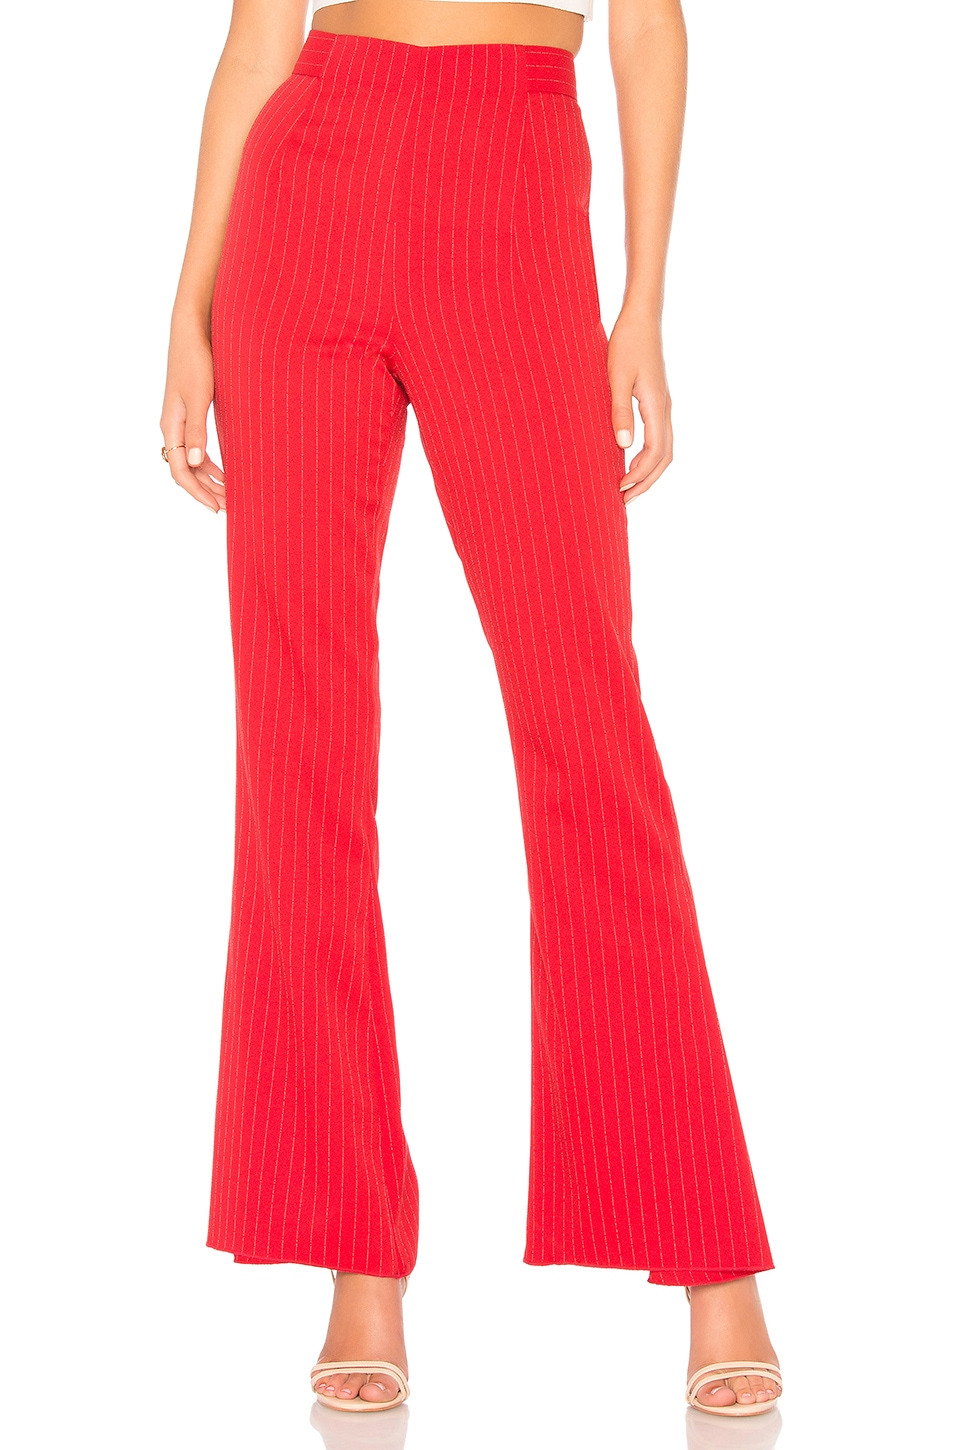 C/MEO COLLECTIVE C/Meo Striped Trousers - Red